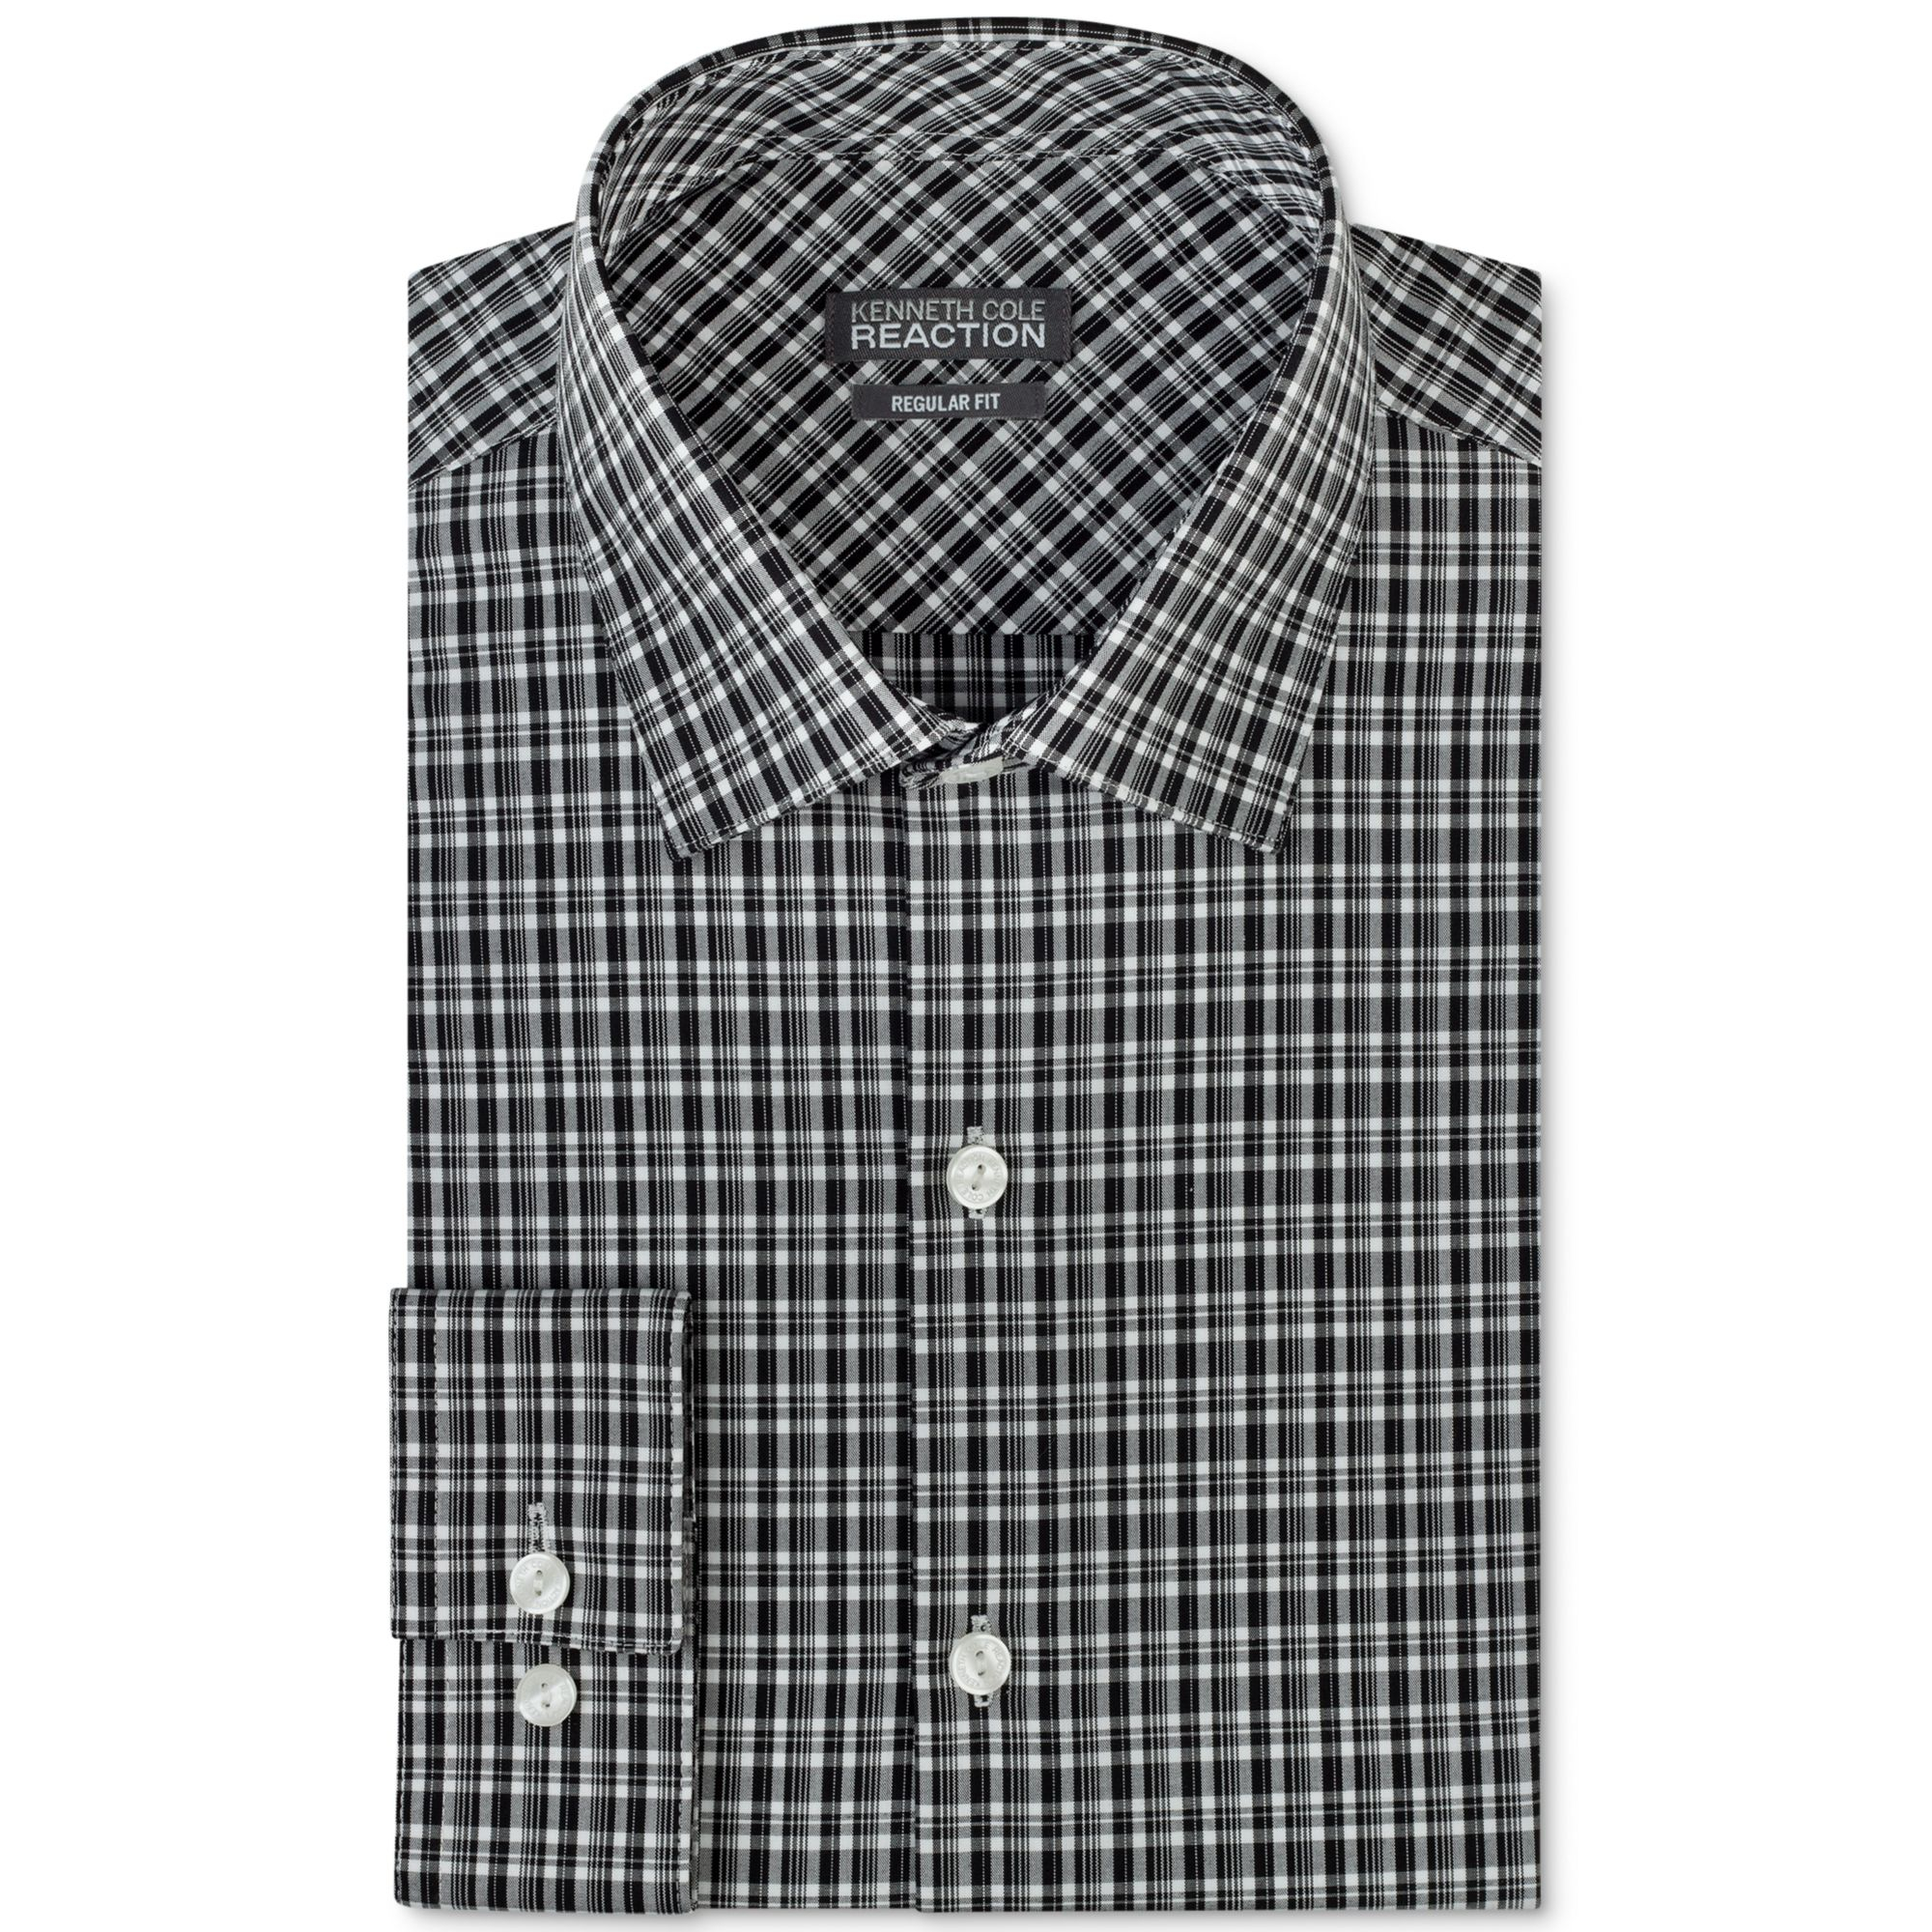 Polo Ralph Lauren slim fit tartan check oxford shirt player logo button down in navy/green. £ Bershka check shirt in black and white with button down collar. £ Bershka check shirt in red and black with button down collar. £ Religion Slim Fit Check Shirt In Red. £